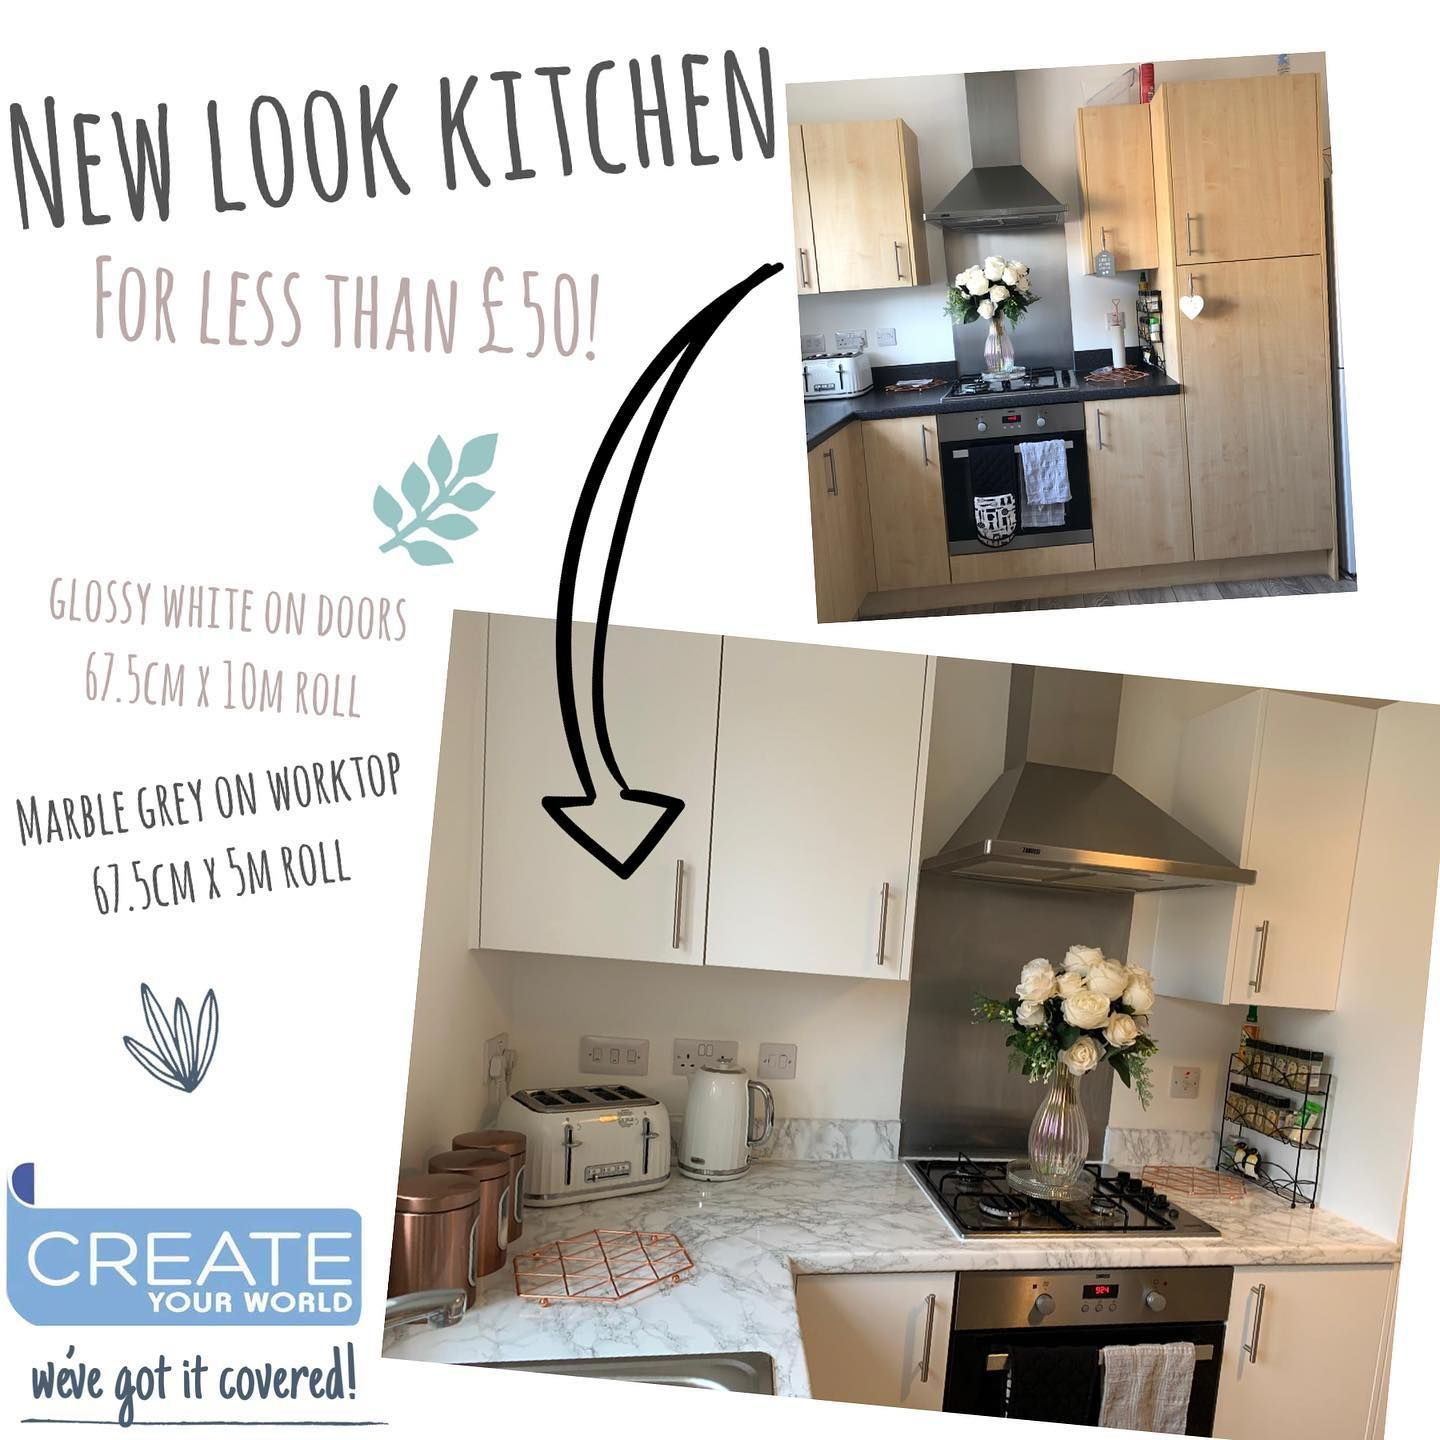 Who Needs A New Look Kitchen For A New Year Look How Home Atplot12 Transformed Their Beige Kitchen To A Li In 2020 Sticky Back Plastic Beige Kitchen Kitchen Makeover